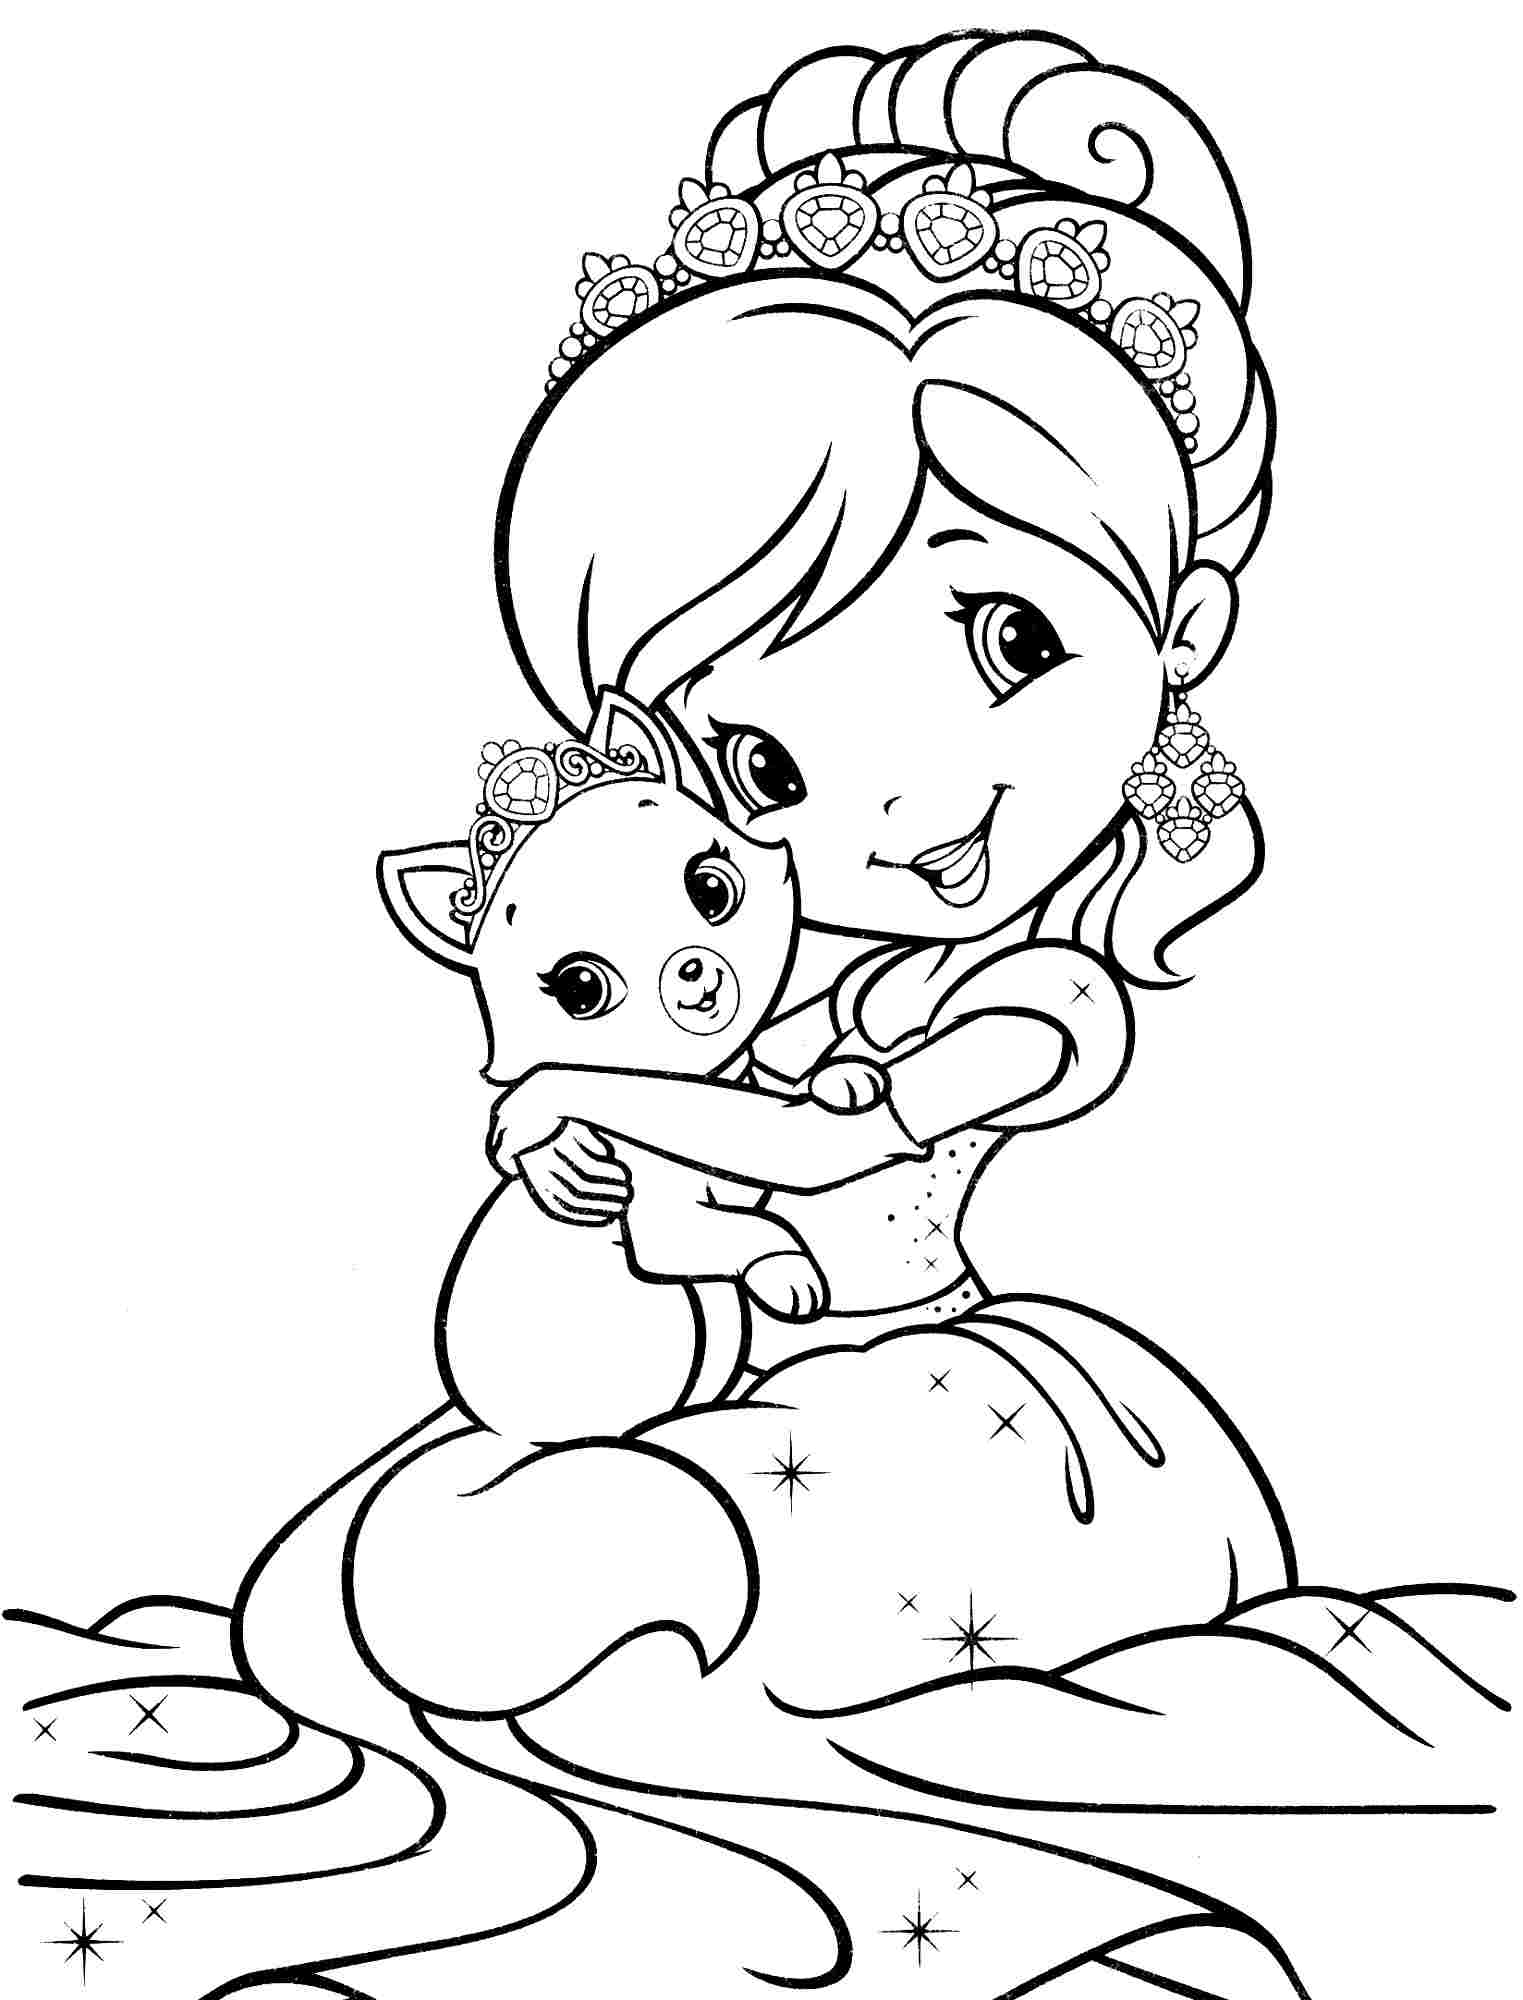 Adult Cute Printable Strawberry Shortcake Coloring Pages Gallery Images best coloring pages strawberry shortcake and friends printable 8 pics of cartoon images